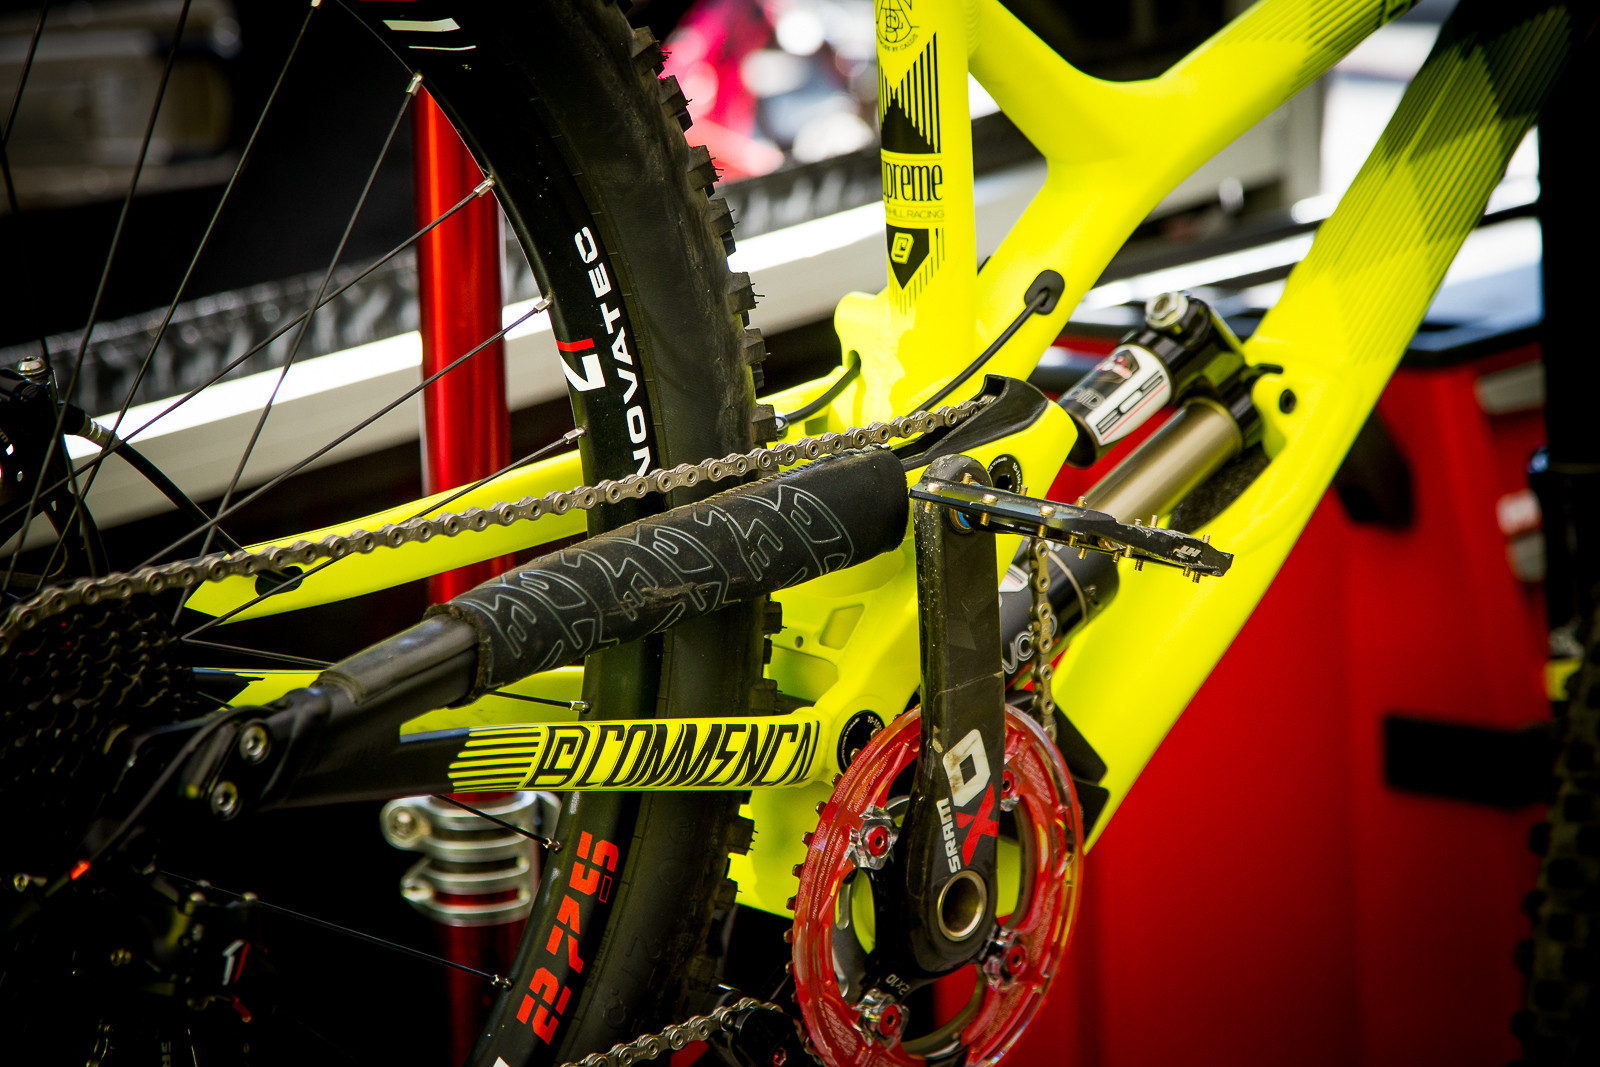 HT Flat Pedals in the Commencal Pits - PIT BITS - World Cup Lenzerheide, Switzerland - Mountain Biking Pictures - Vital MTB